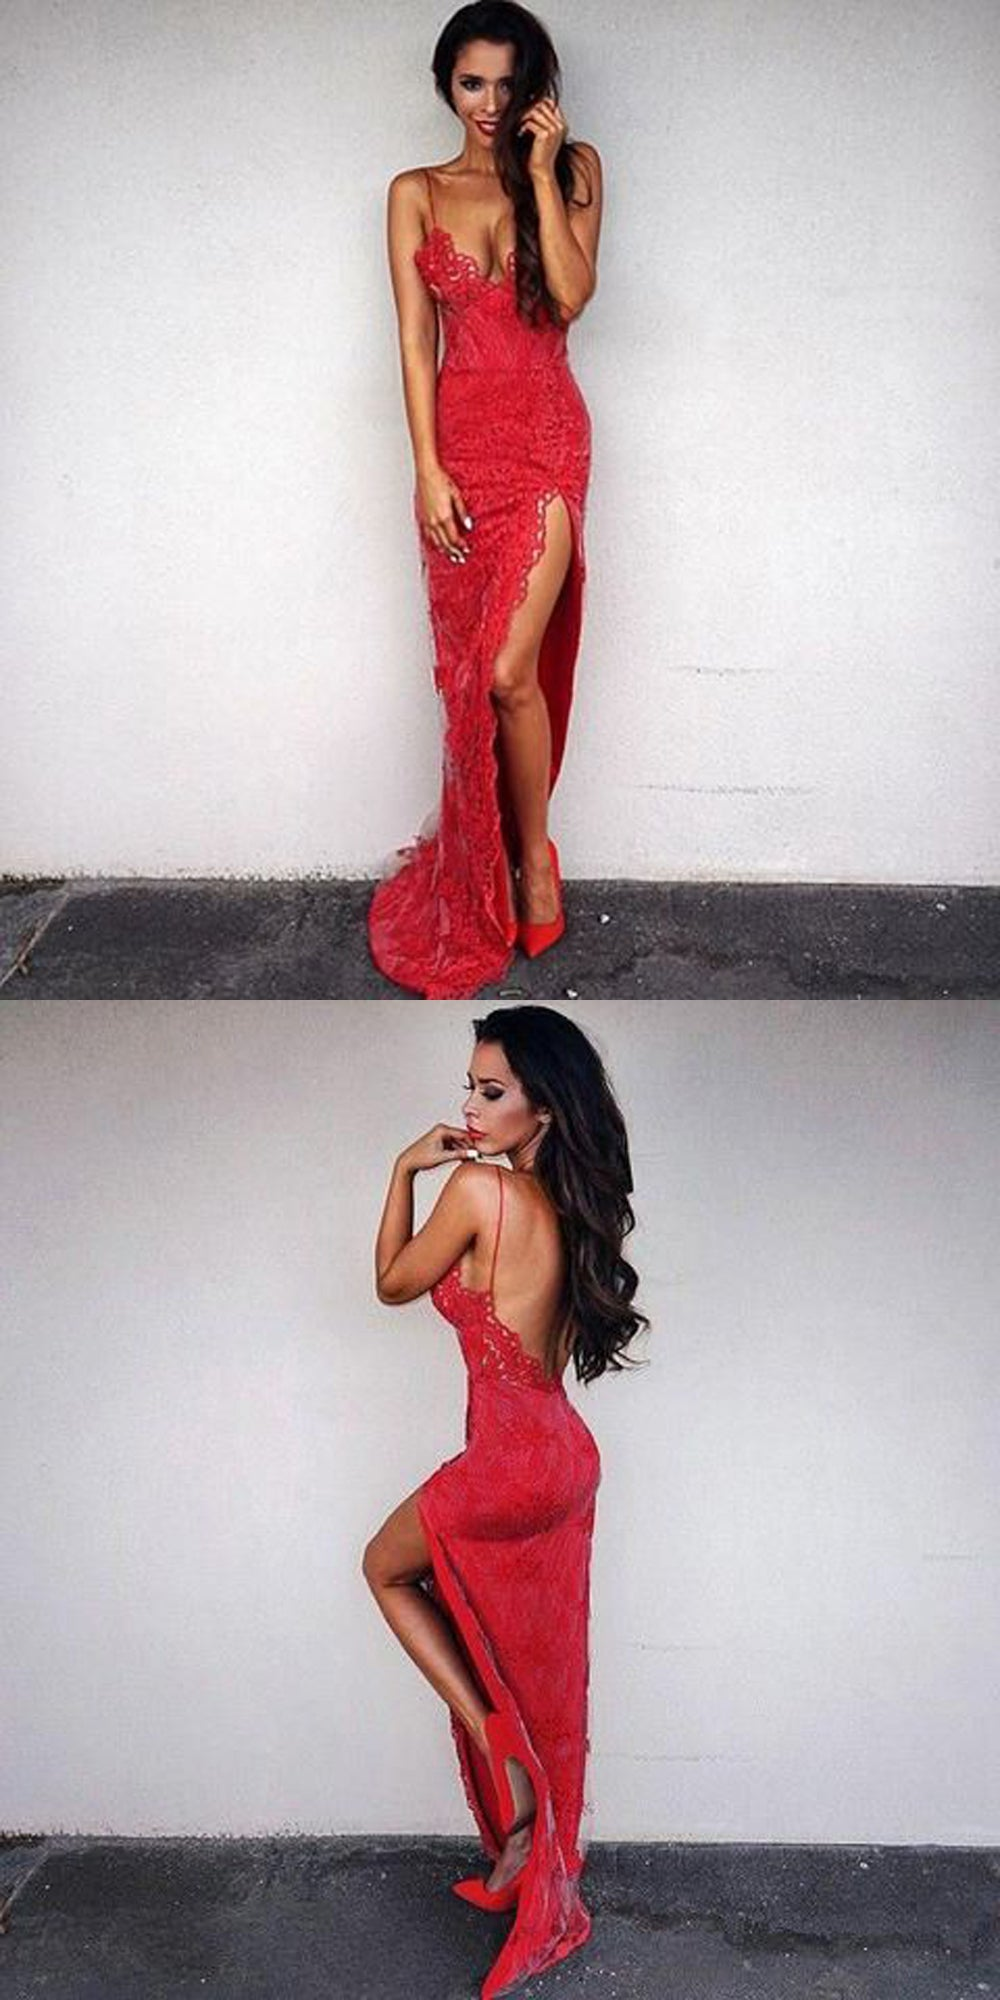 Sexy Valentines Date Outfit Ideas for Women  -  día de San Valentín, ideas de ropa para mujeres - Red Lace Maxi Dress Back Less - www.GlamantiBeauty.com